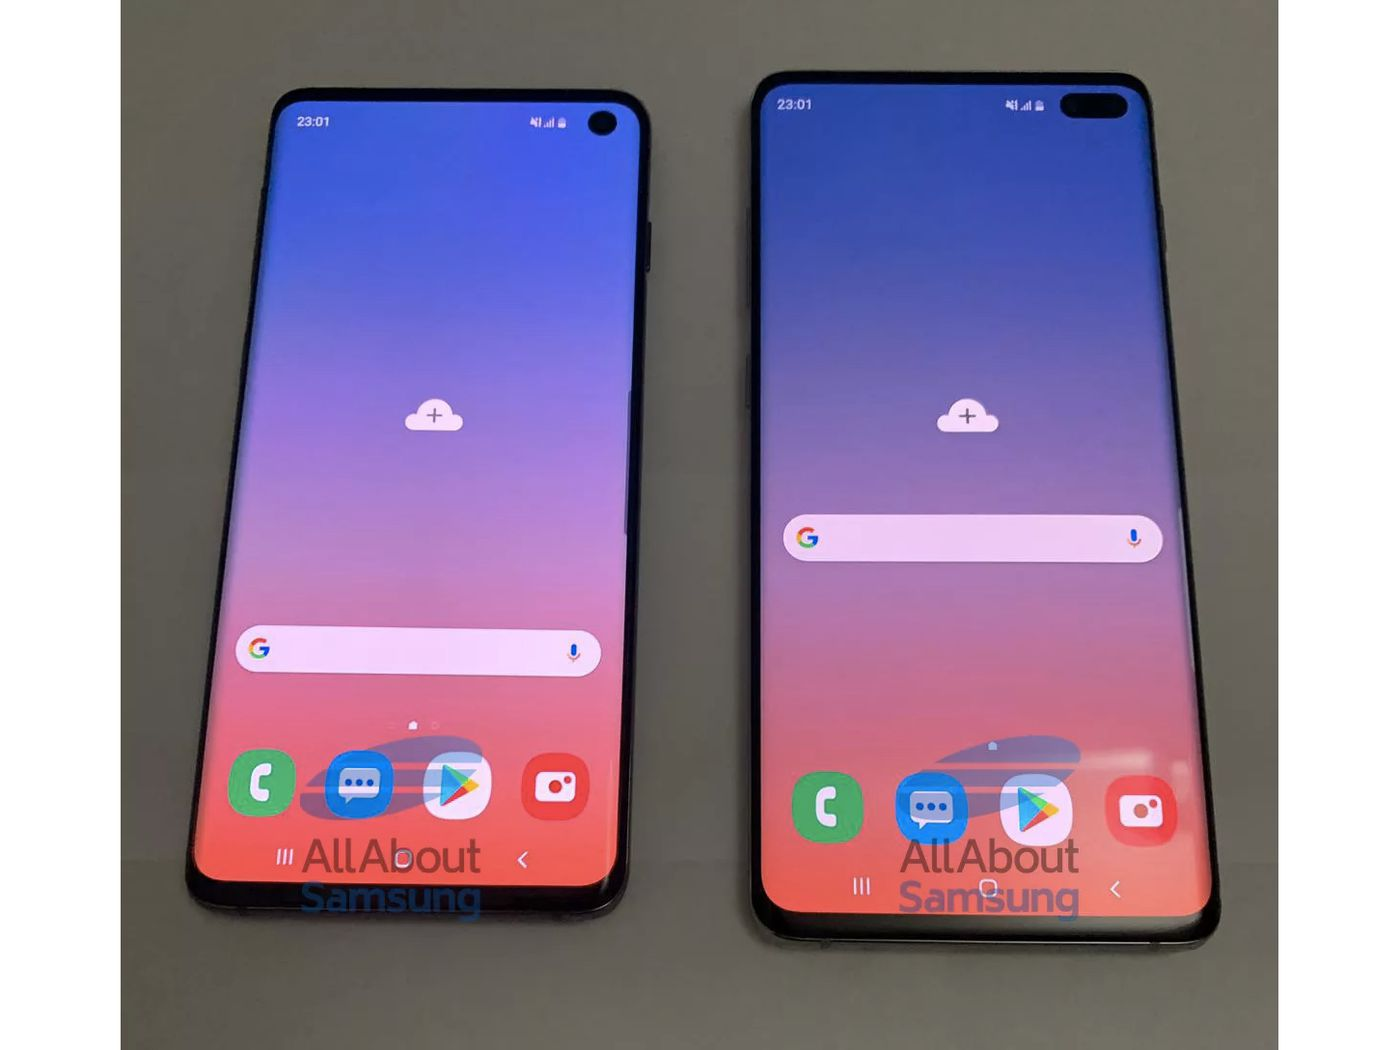 Samsung's Galaxy S10 will be one of the first Wi-Fi 6 phones - The Verge